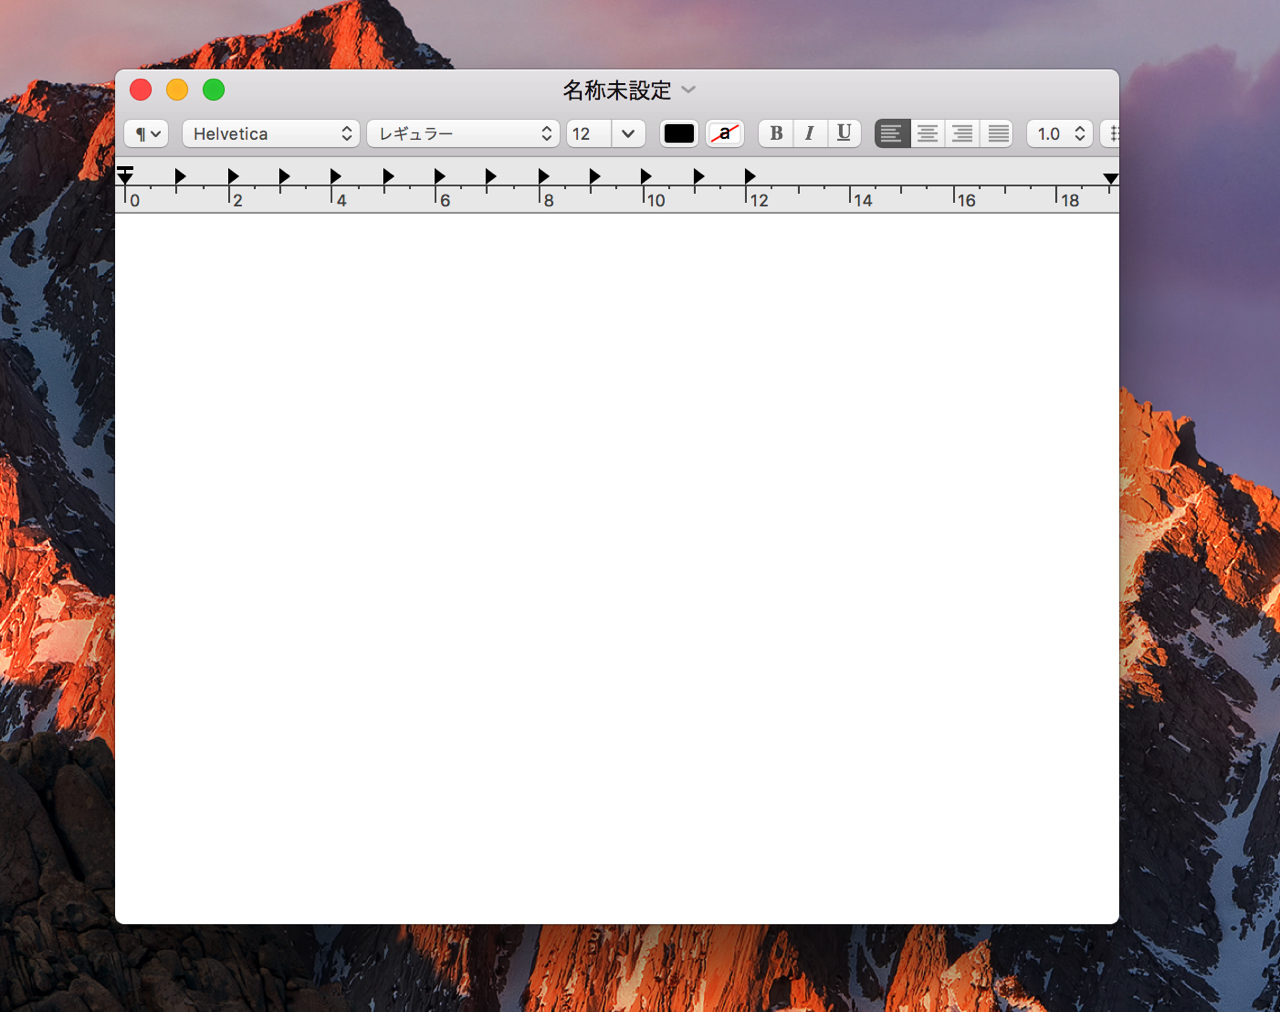 Quickly create new files with mac text editor2